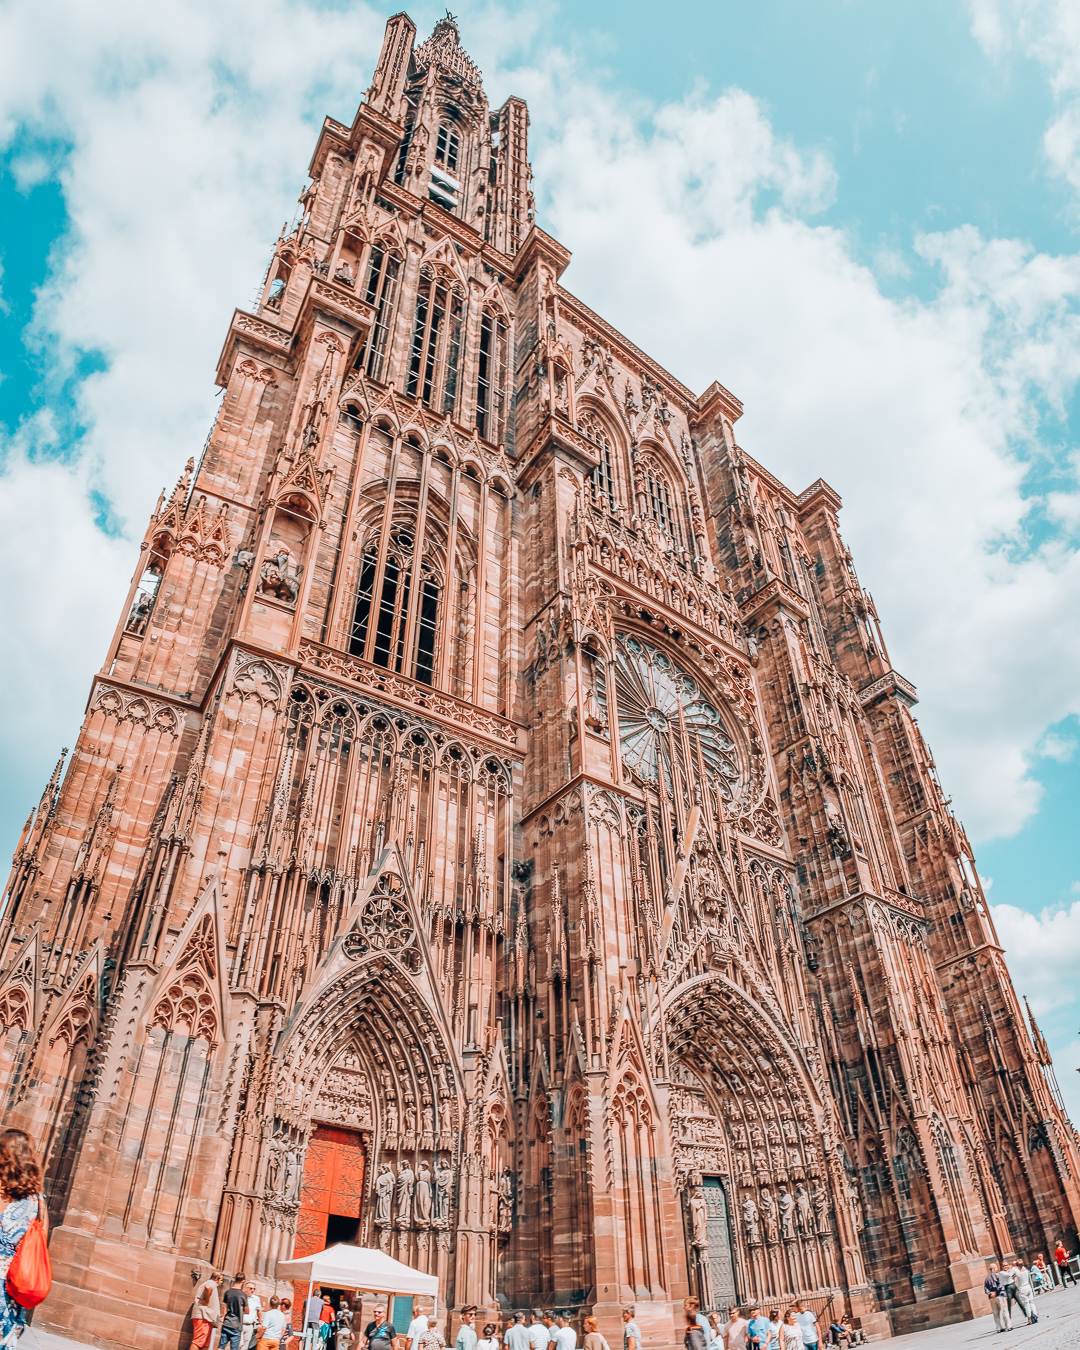 Large Cathedral in Strasbourg